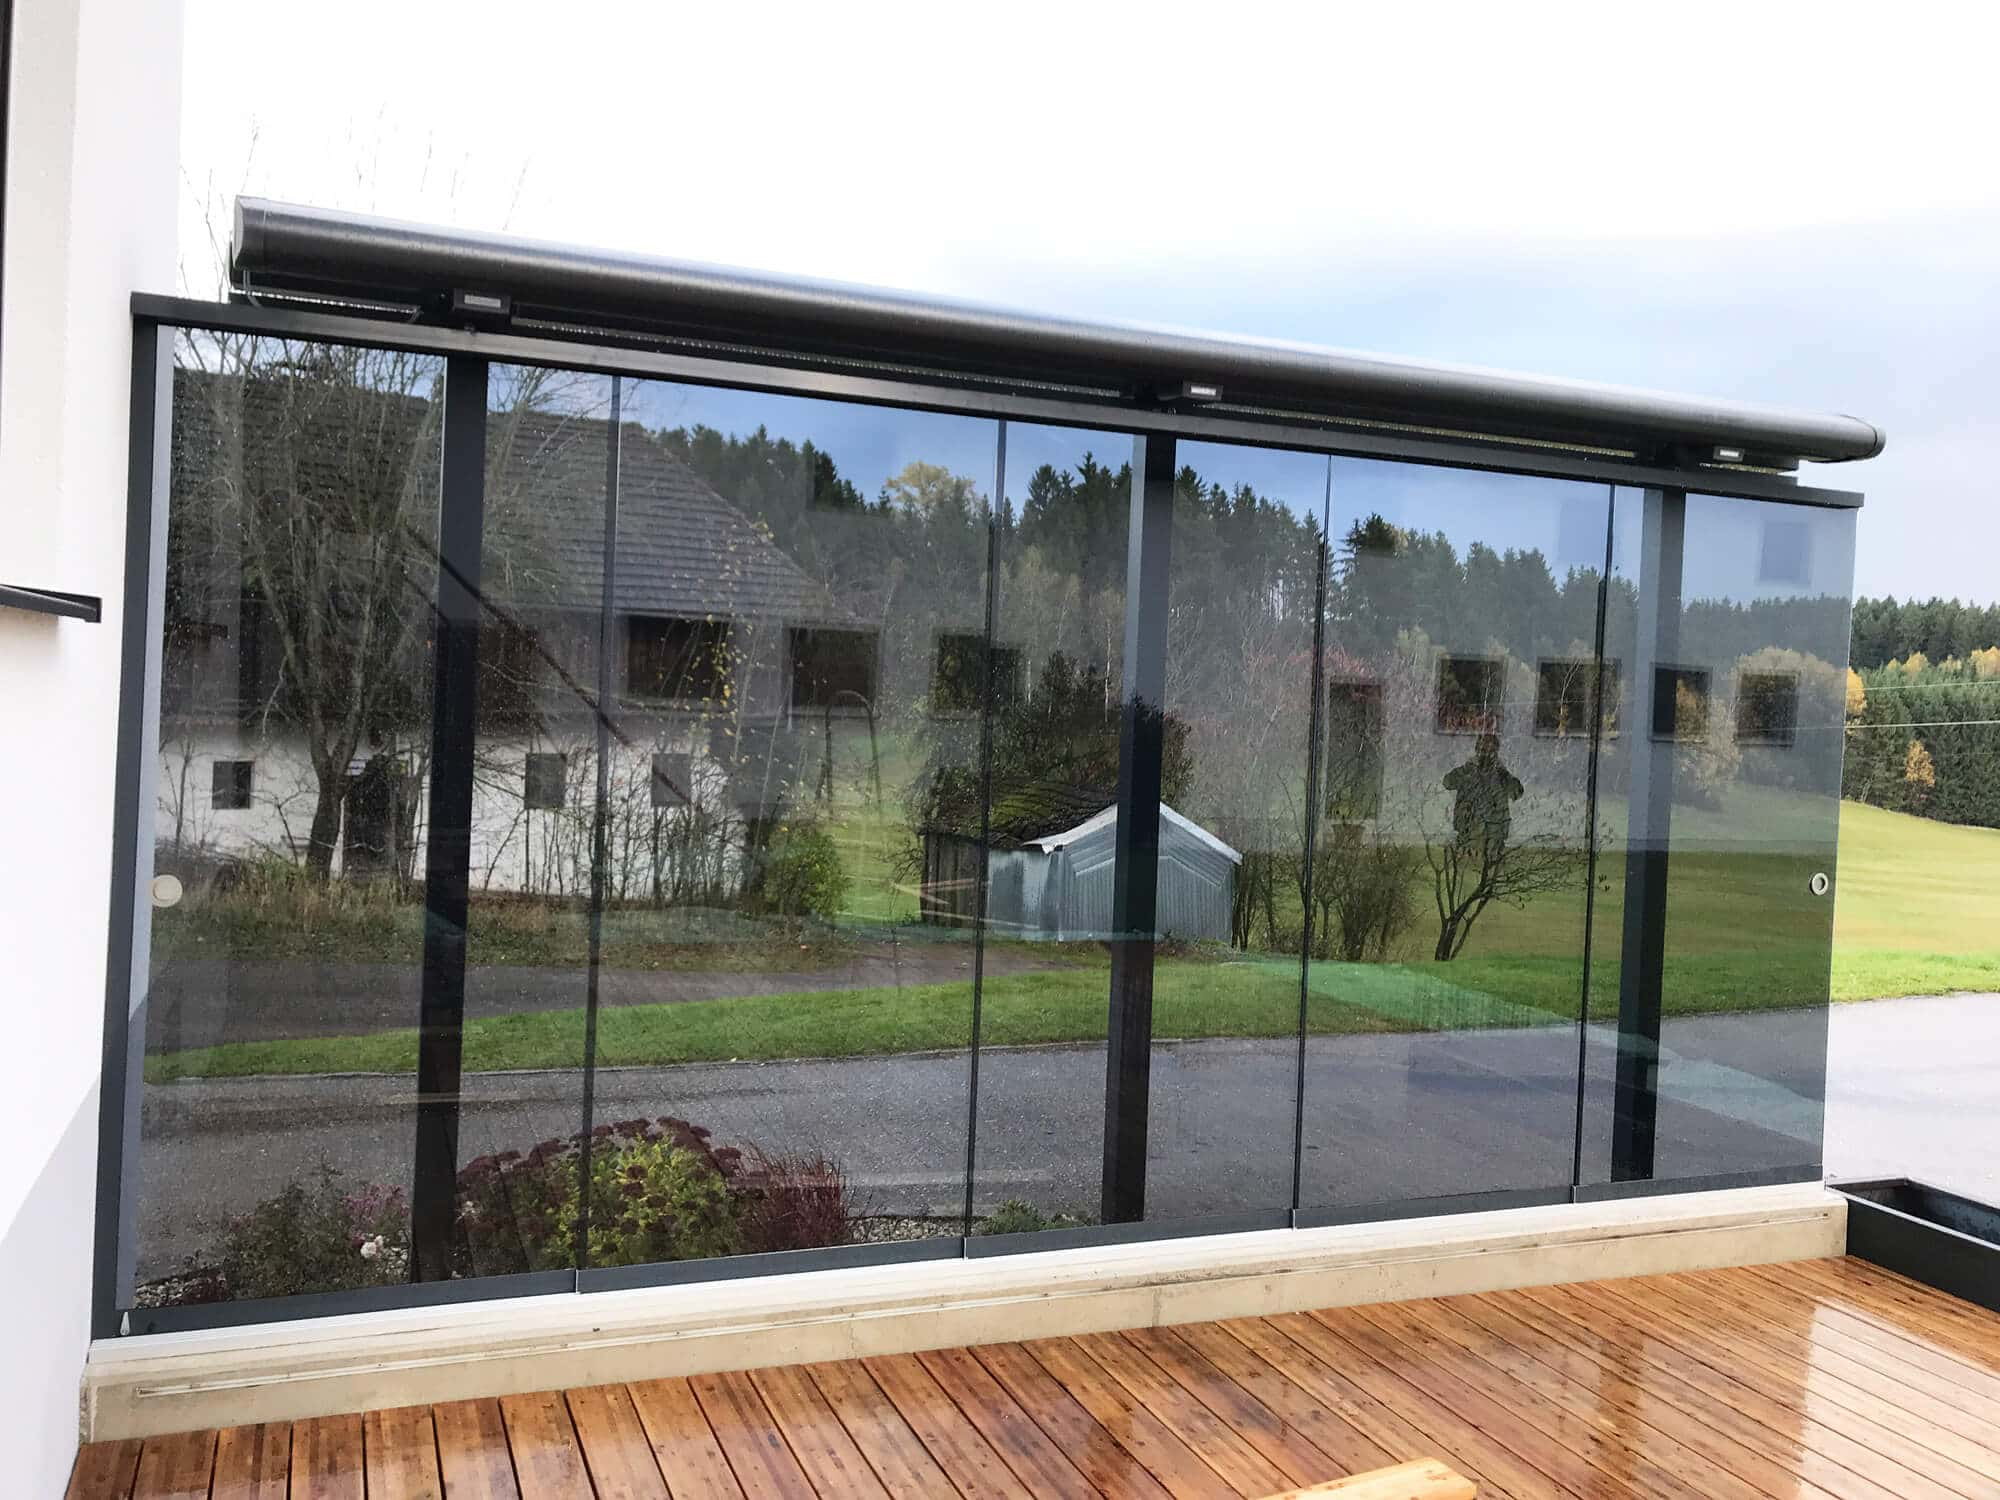 Windschutz Fur Terrasse Transparent Mit Glasschiebeturen